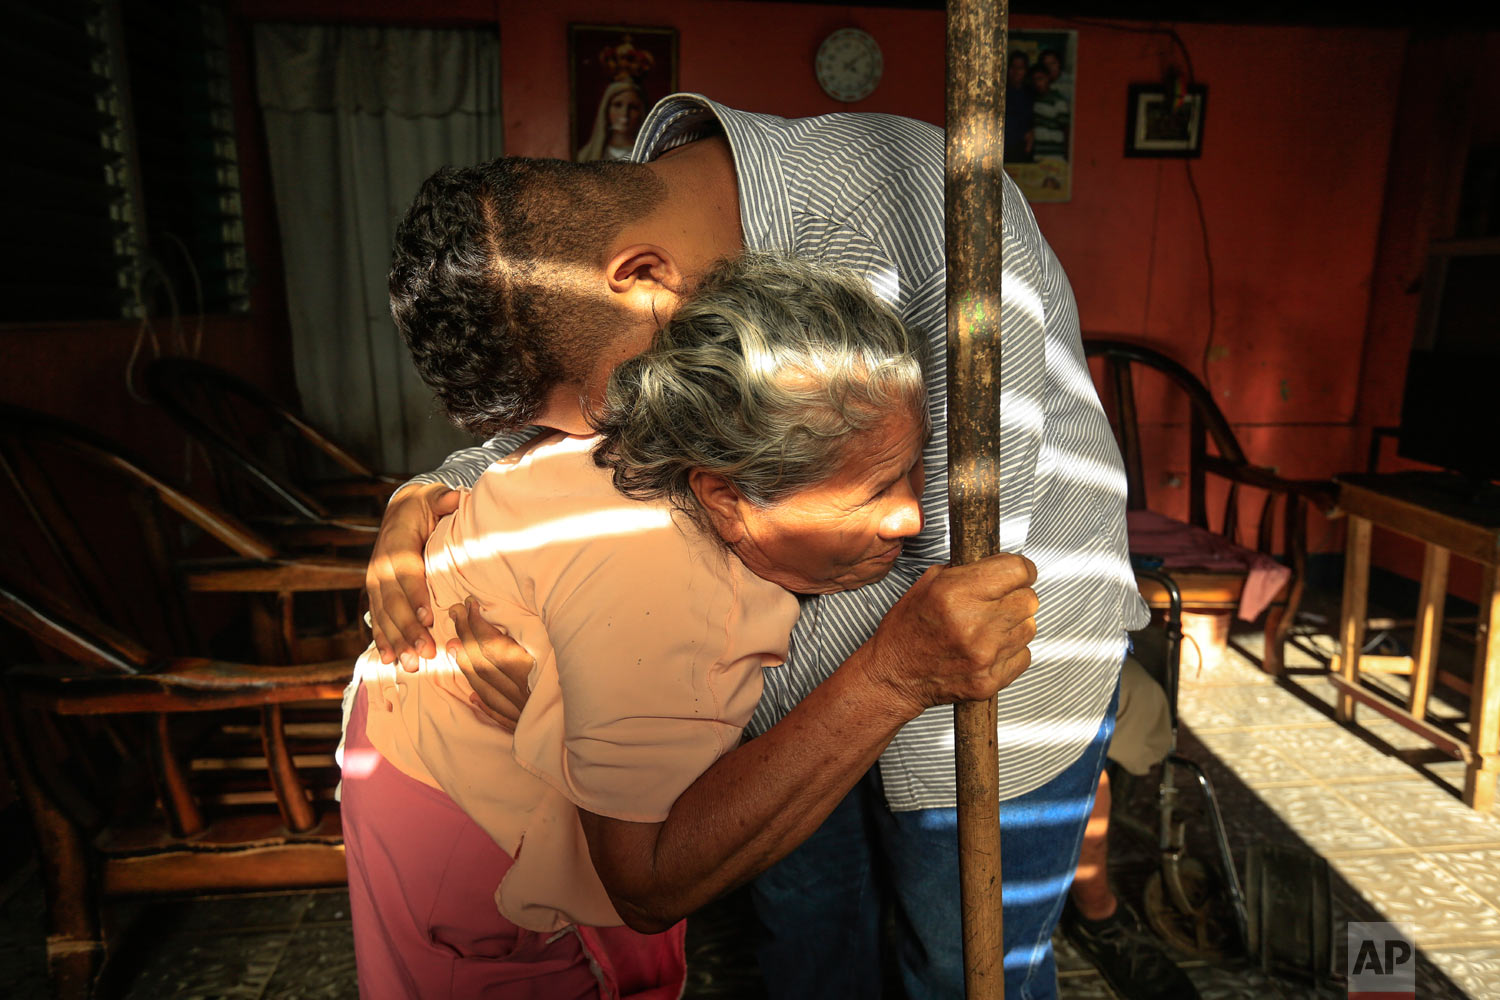 In this March 15, 2019 photo, Martin Josue Paz embraces his grandmother Alba Aleman after he was released from prison and placed under house arrest, in Managua, Nicaragua. (AP Photo/Alfredo Zuniga)